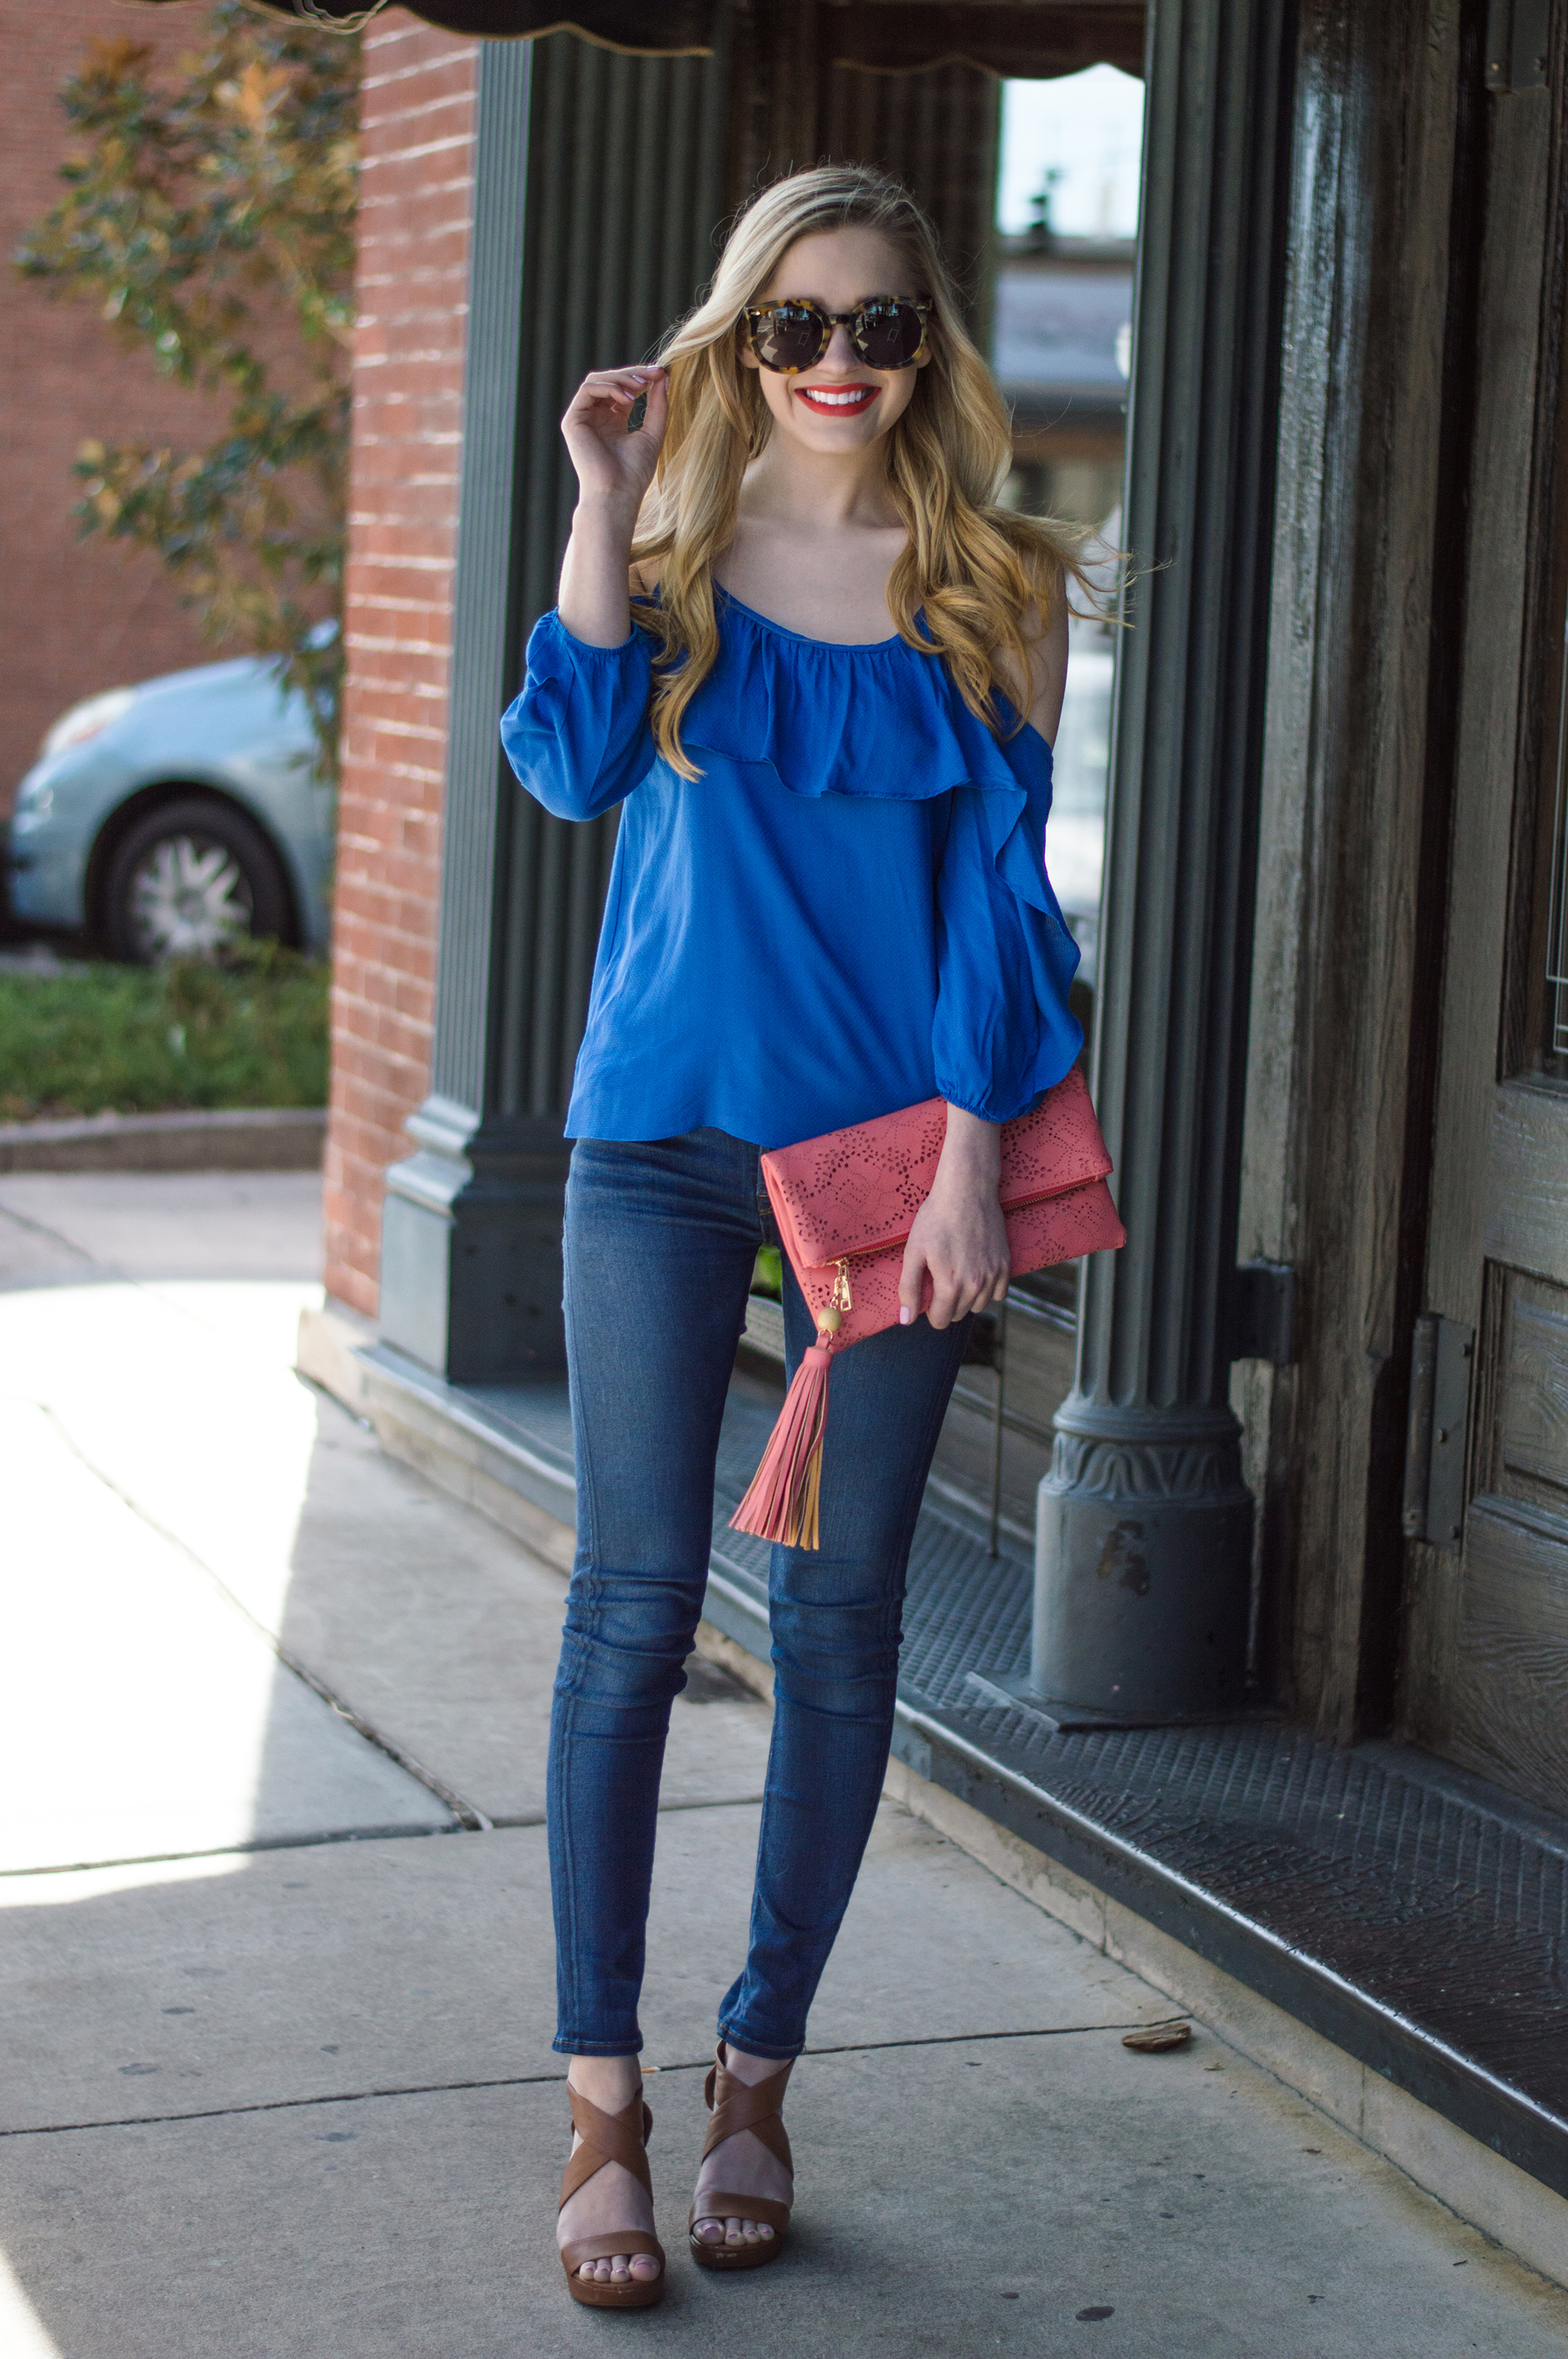 styelled-blog-elle-elisabeth-ootd-hudson-jeans-off-the-shoulder-top-karen-walker-super-duper-thistle-mac-lady-danger-jessica-simpson-brick-city-closet-spring-blue-07